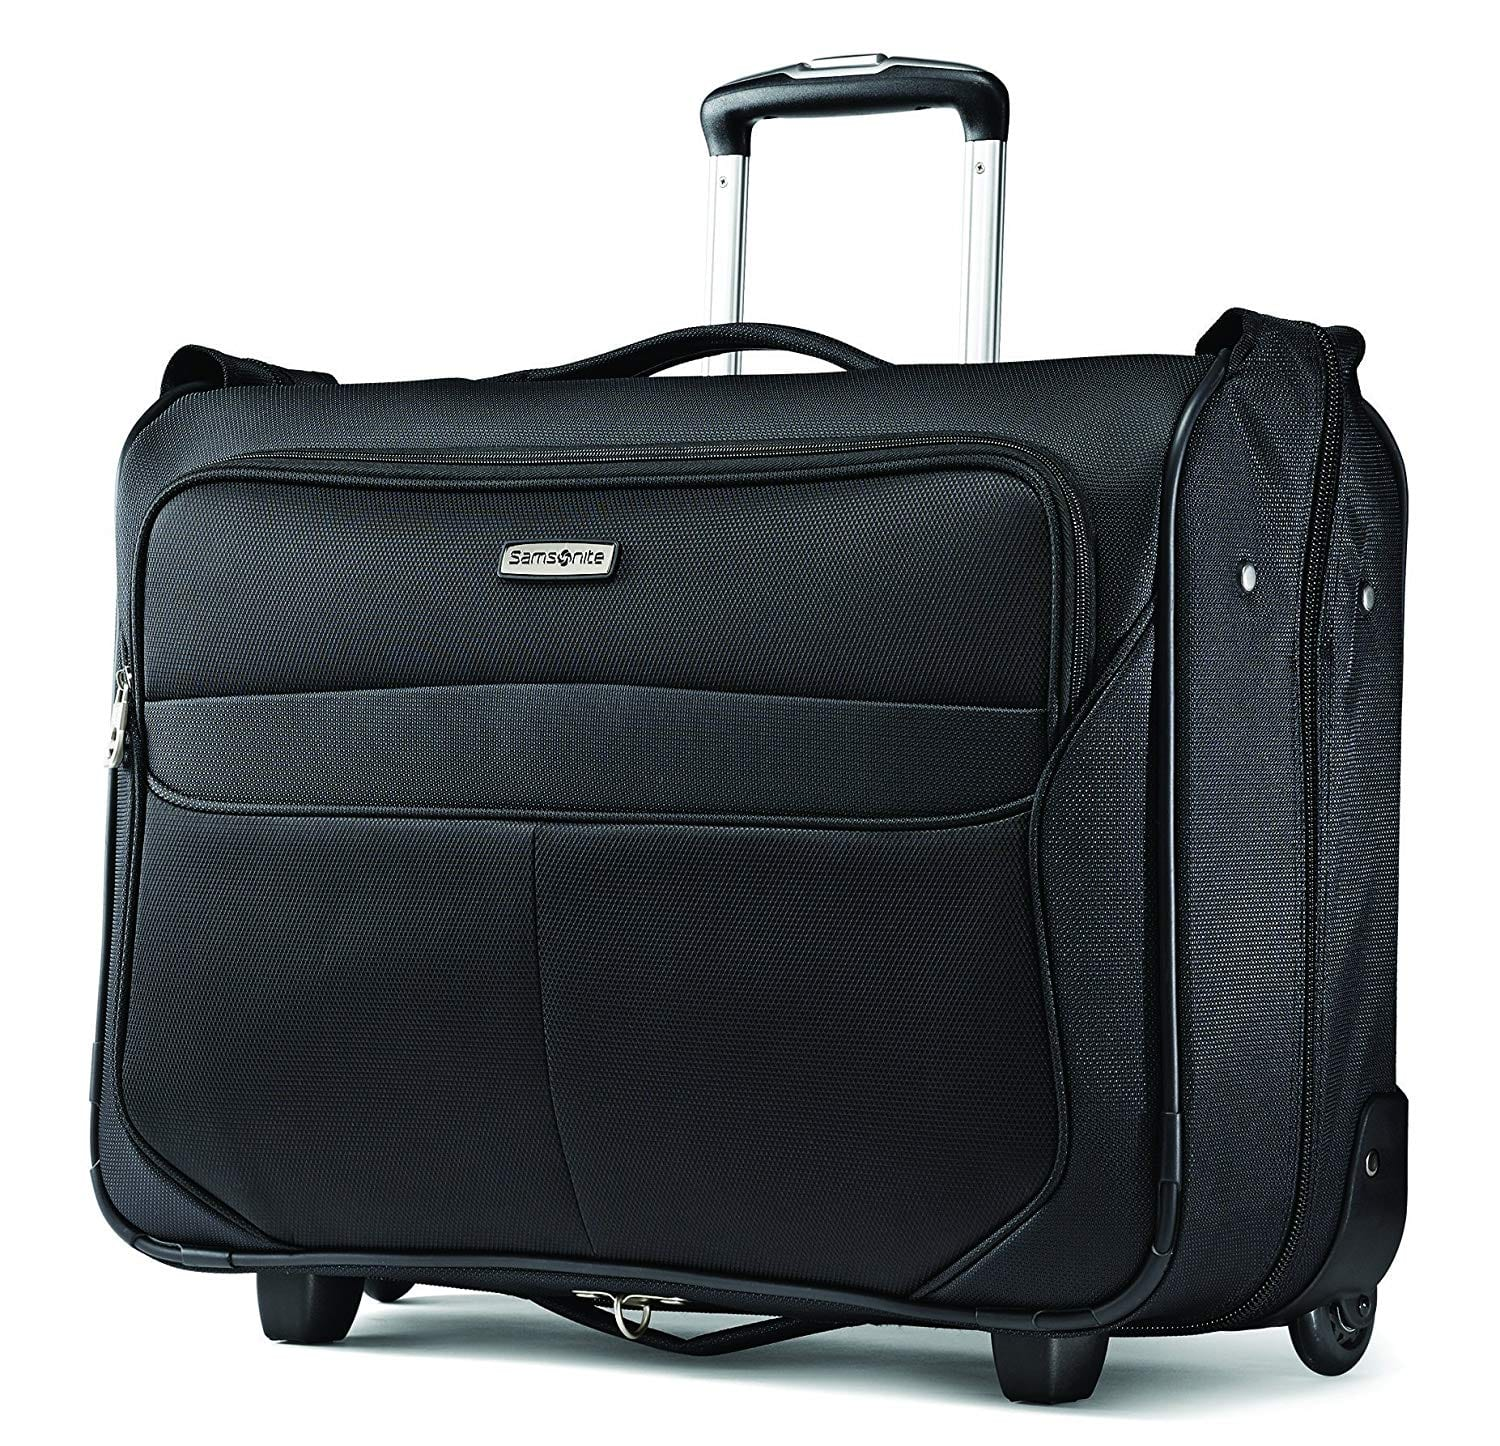 Samsonite Lift Wheeled Carry On Garment Bag